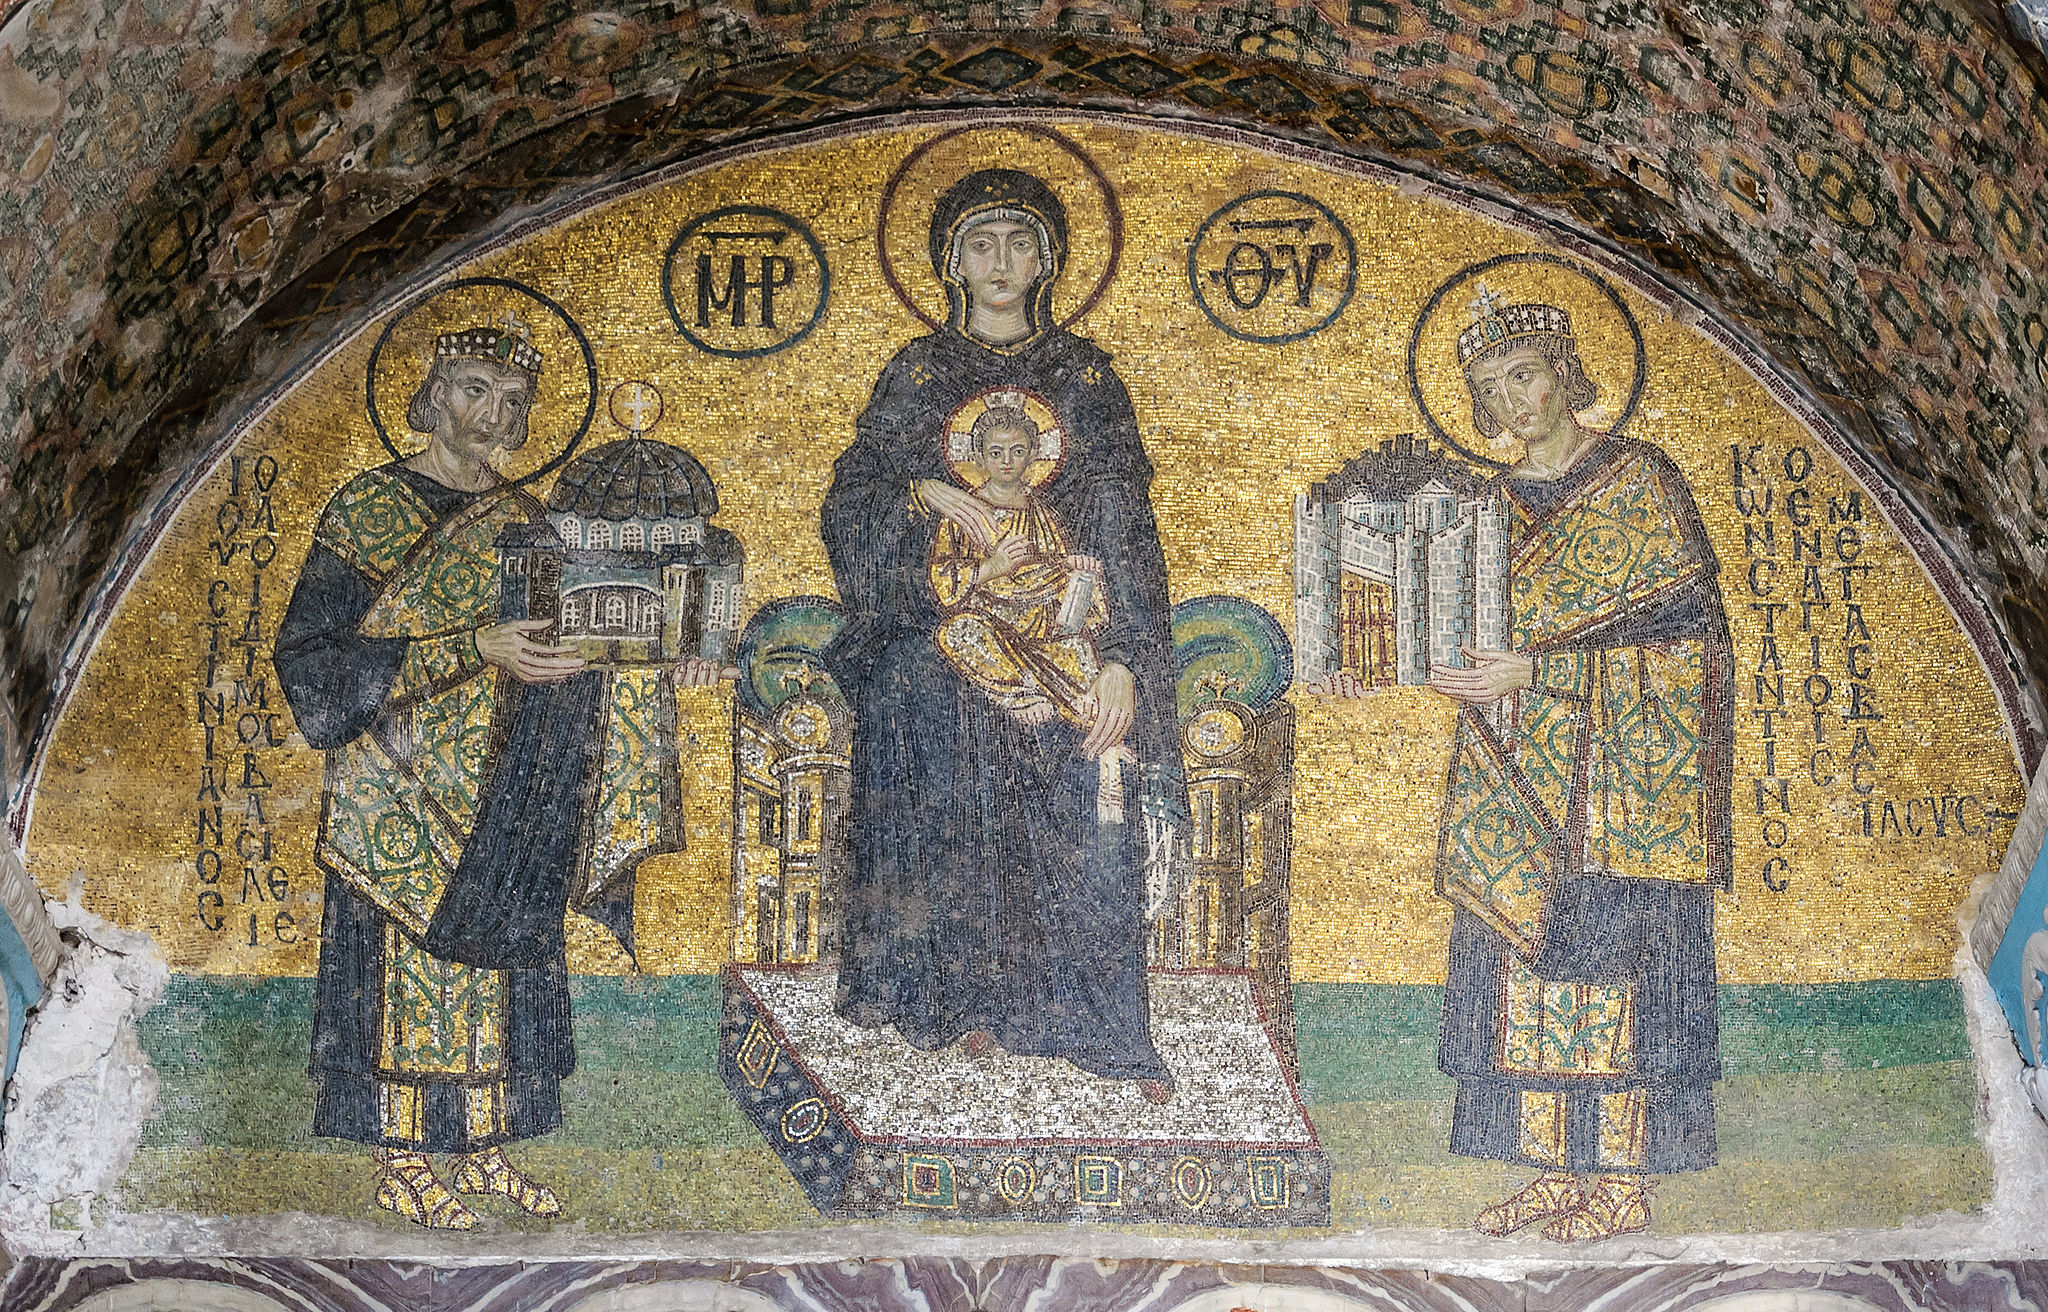 Guided practice: continuity and change in the Byzantine Empire